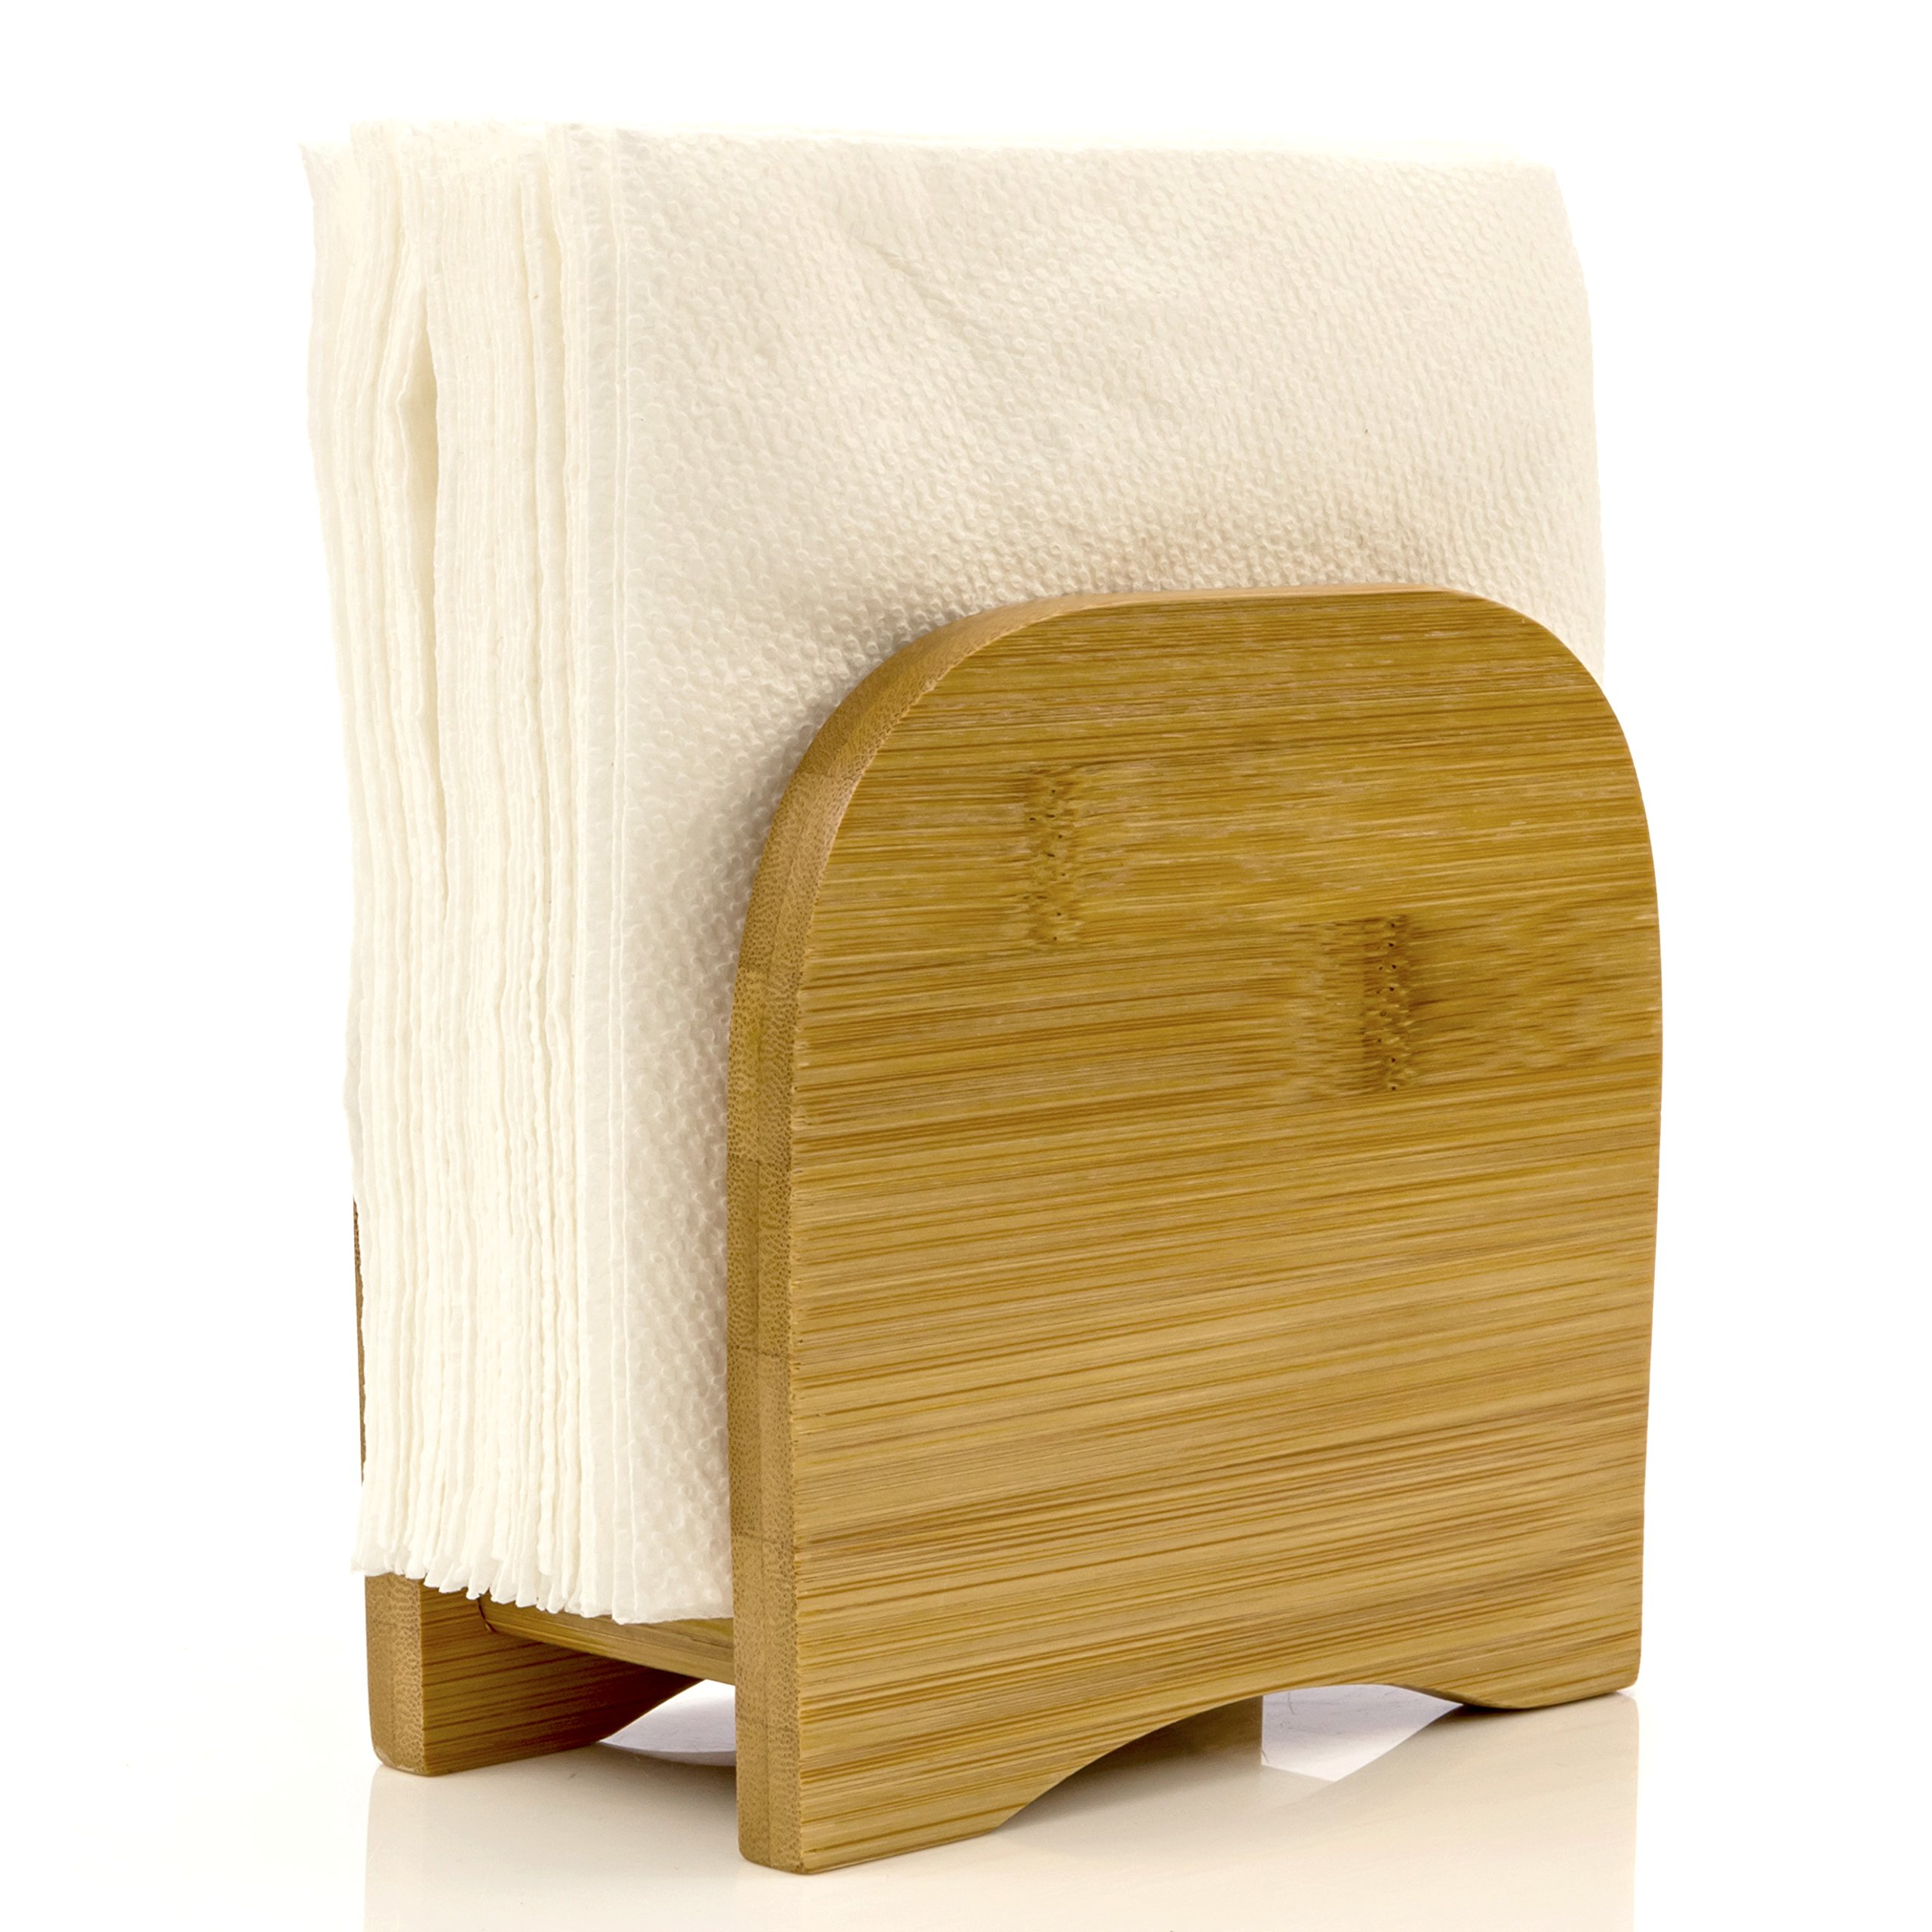 Napkin Holder Counter Top Made of Organic Bamboo Wood By Intriom Bamboo Collection by Intriom